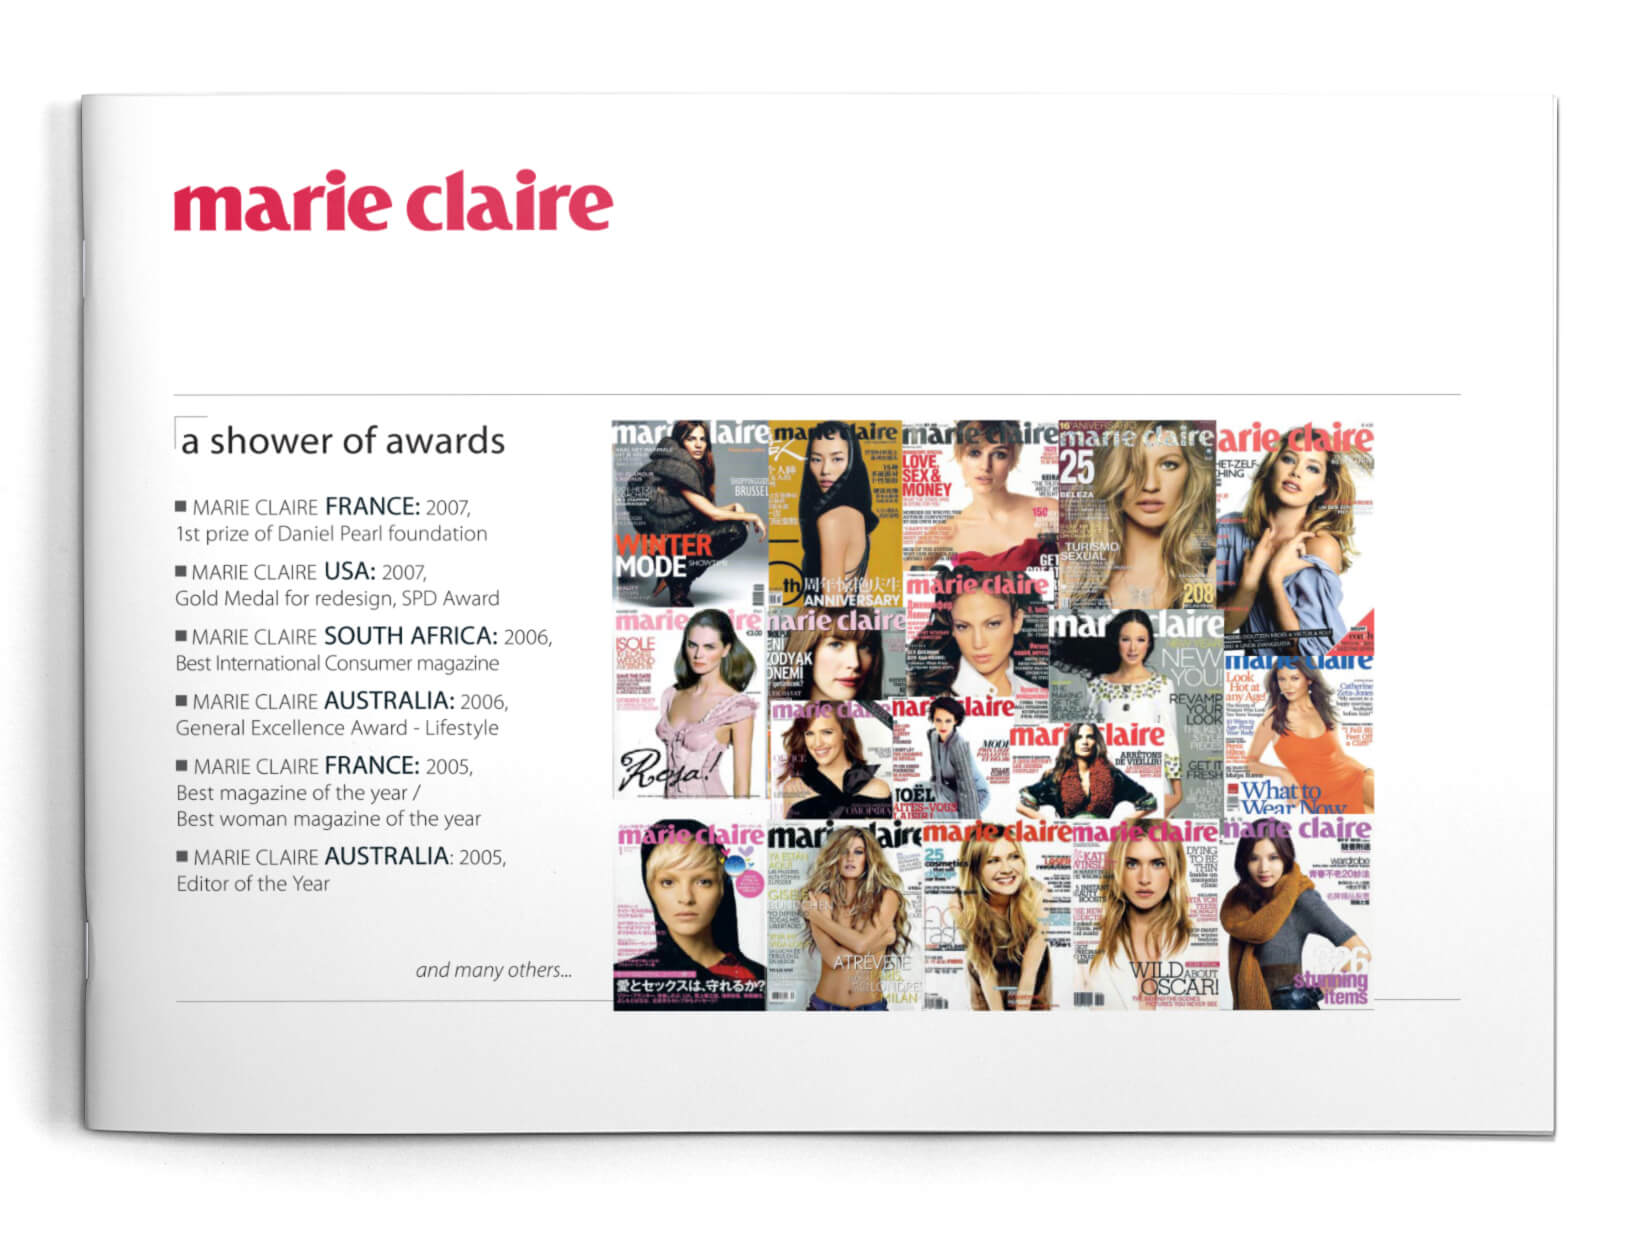 mediakit-marieclaire-cover-3